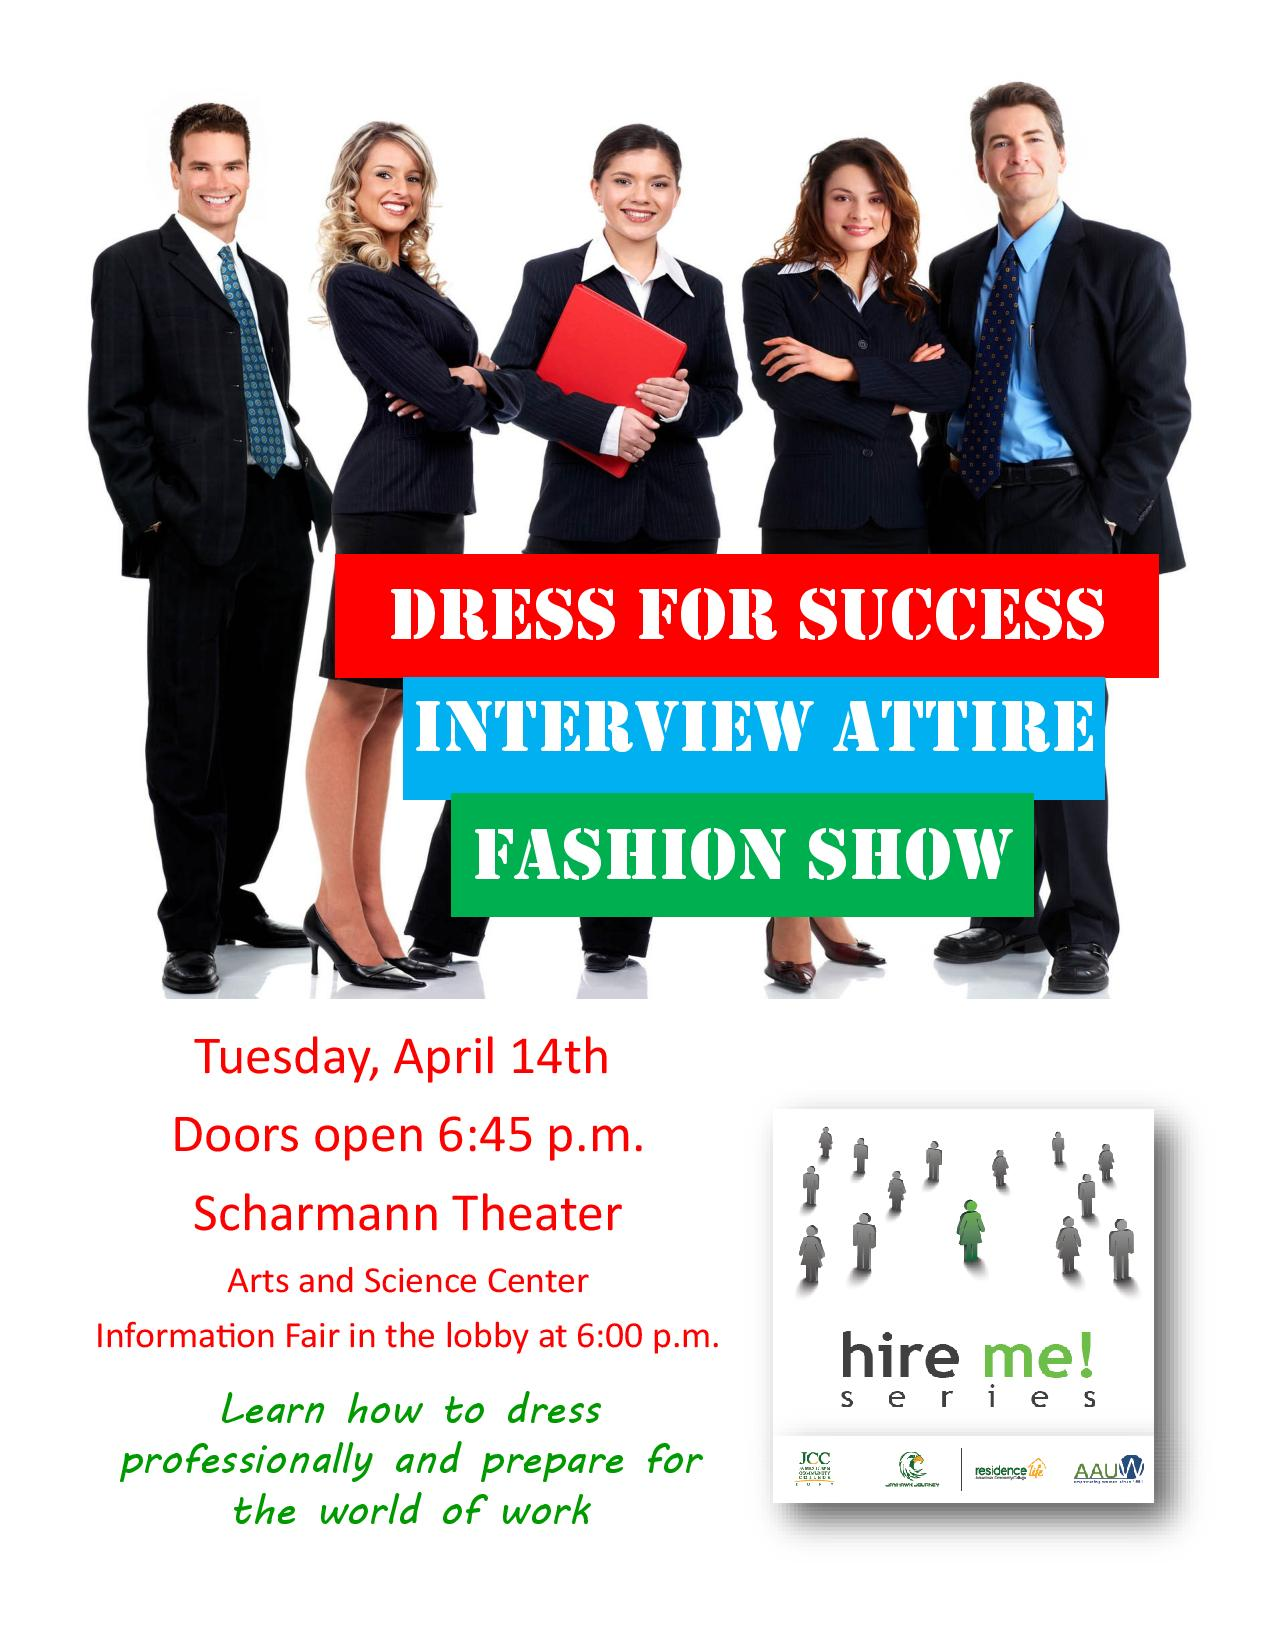 Dress for success fashion show